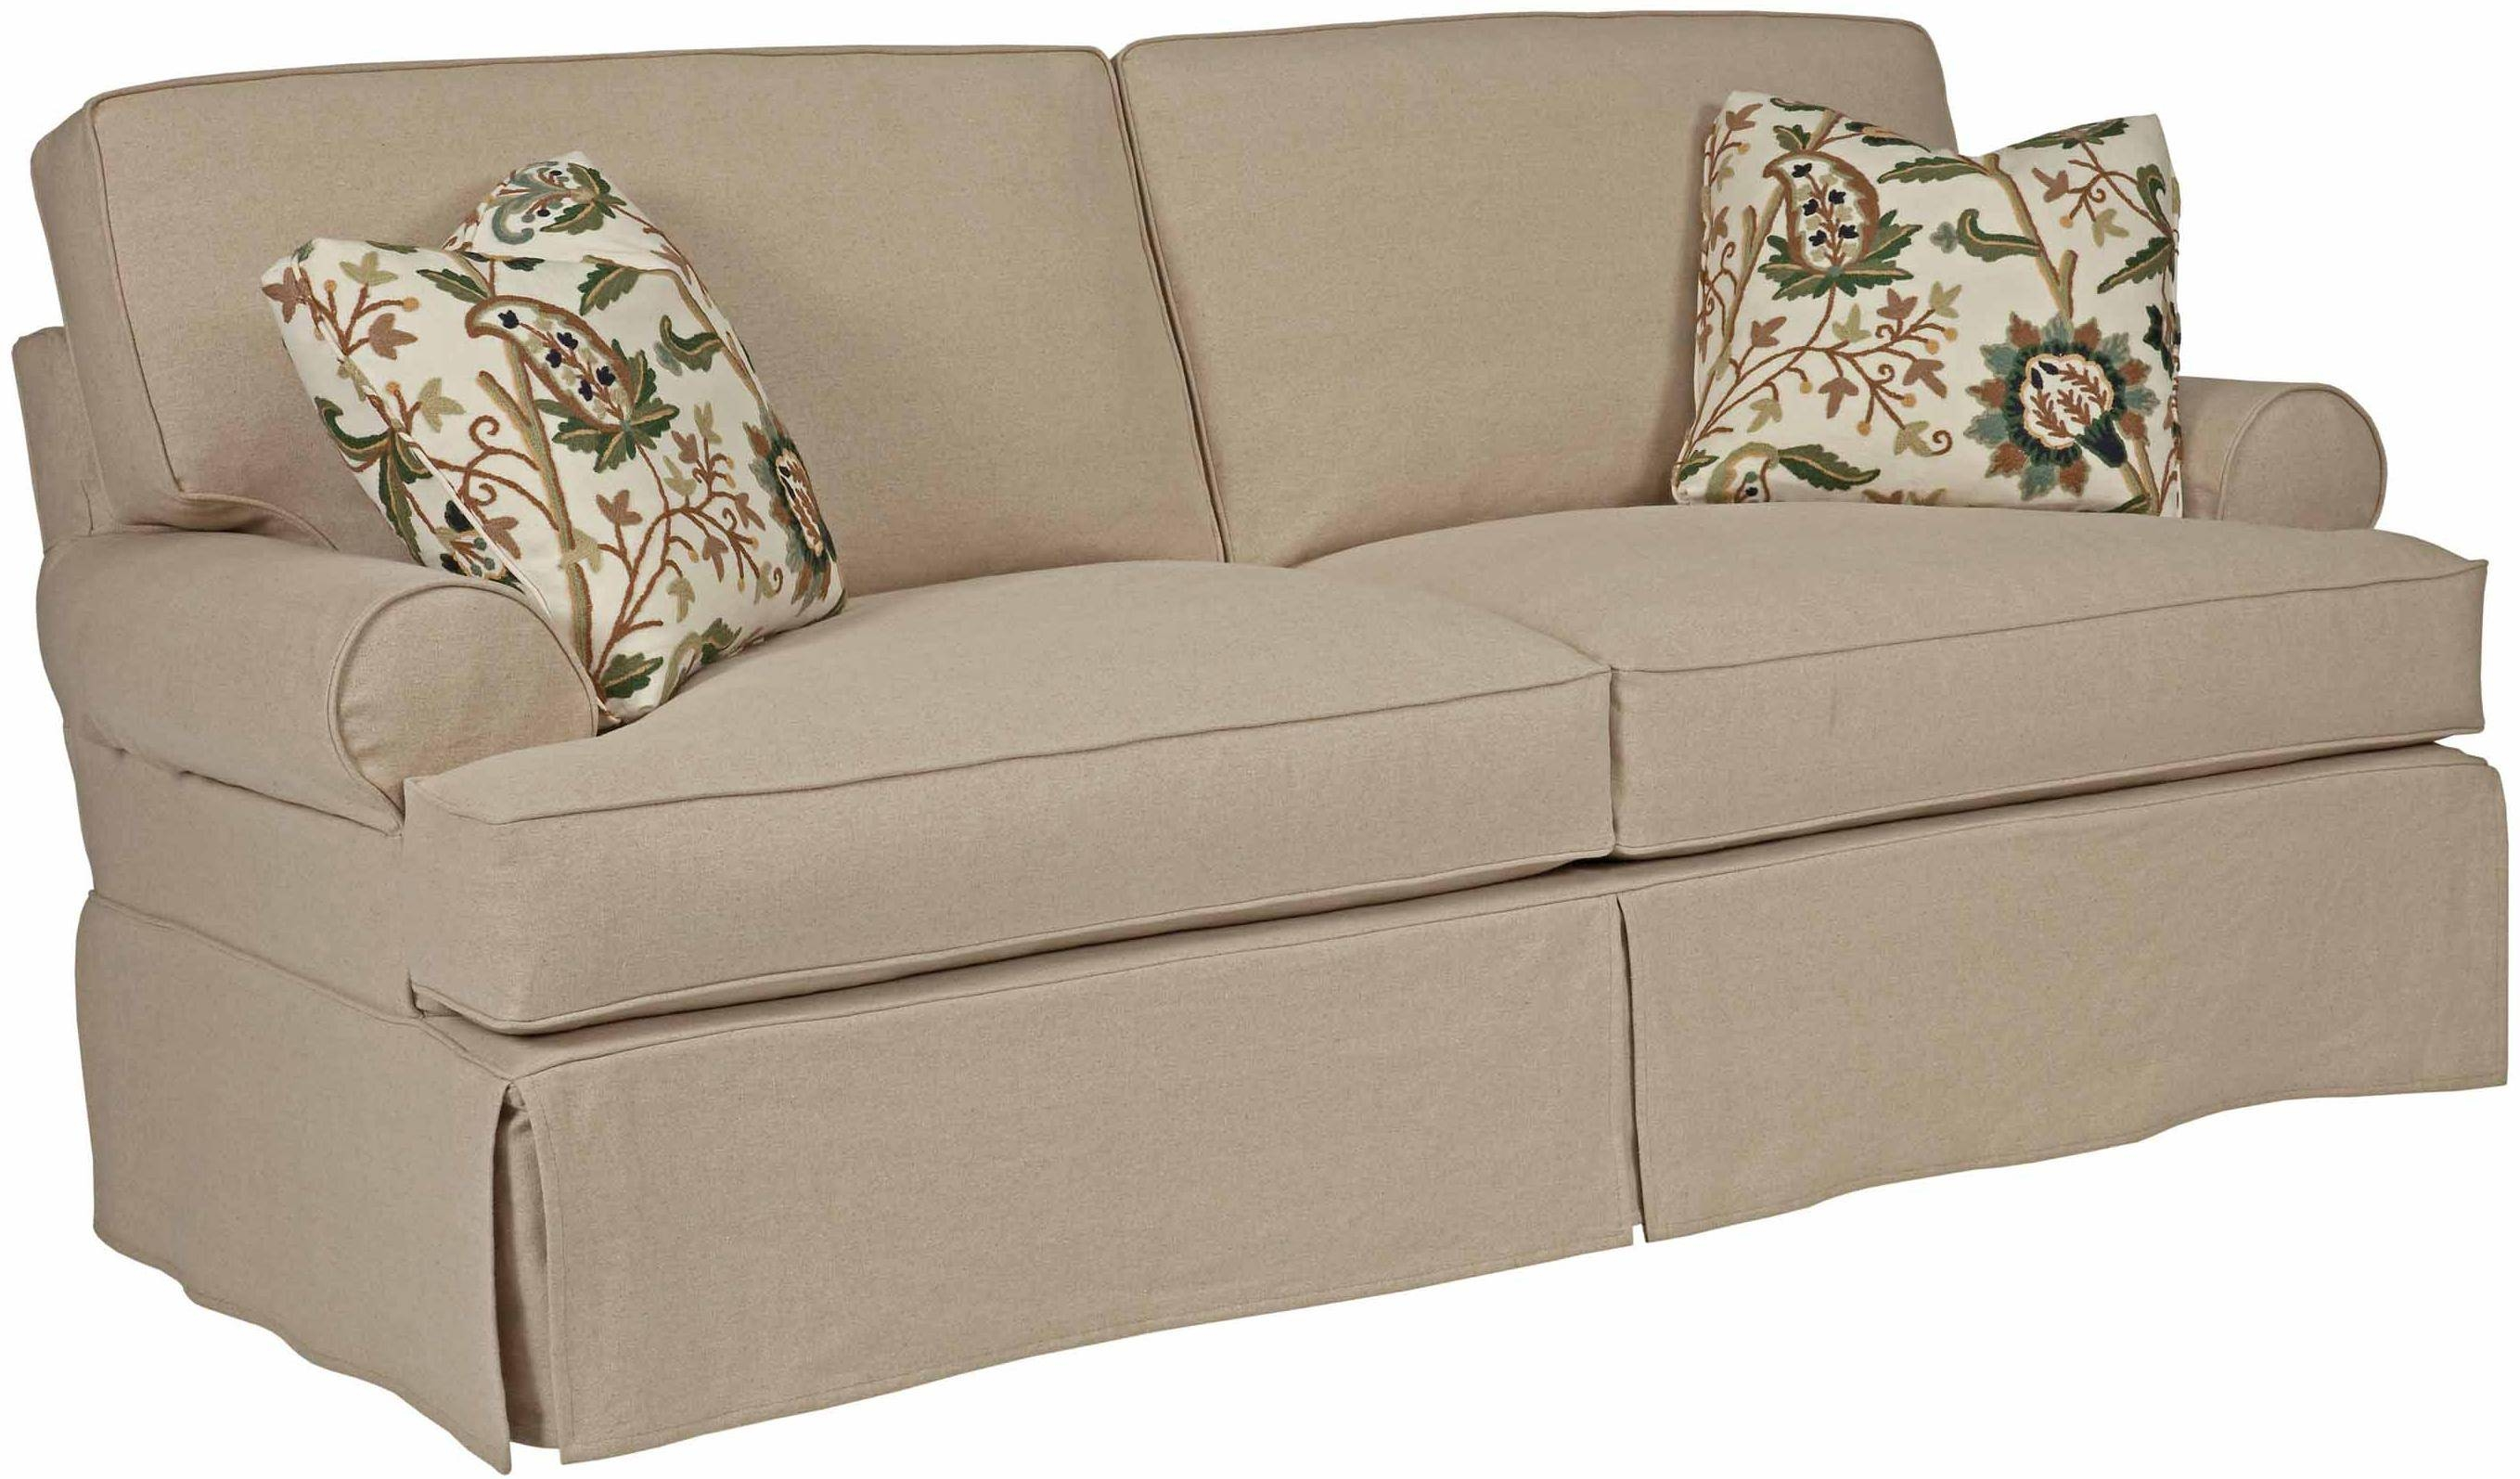 Samantha Two Seat Sofa With Slipcover Tailoring & Loose Pillow pertaining to Loose Pillow Back Sofas (Image 10 of 15)